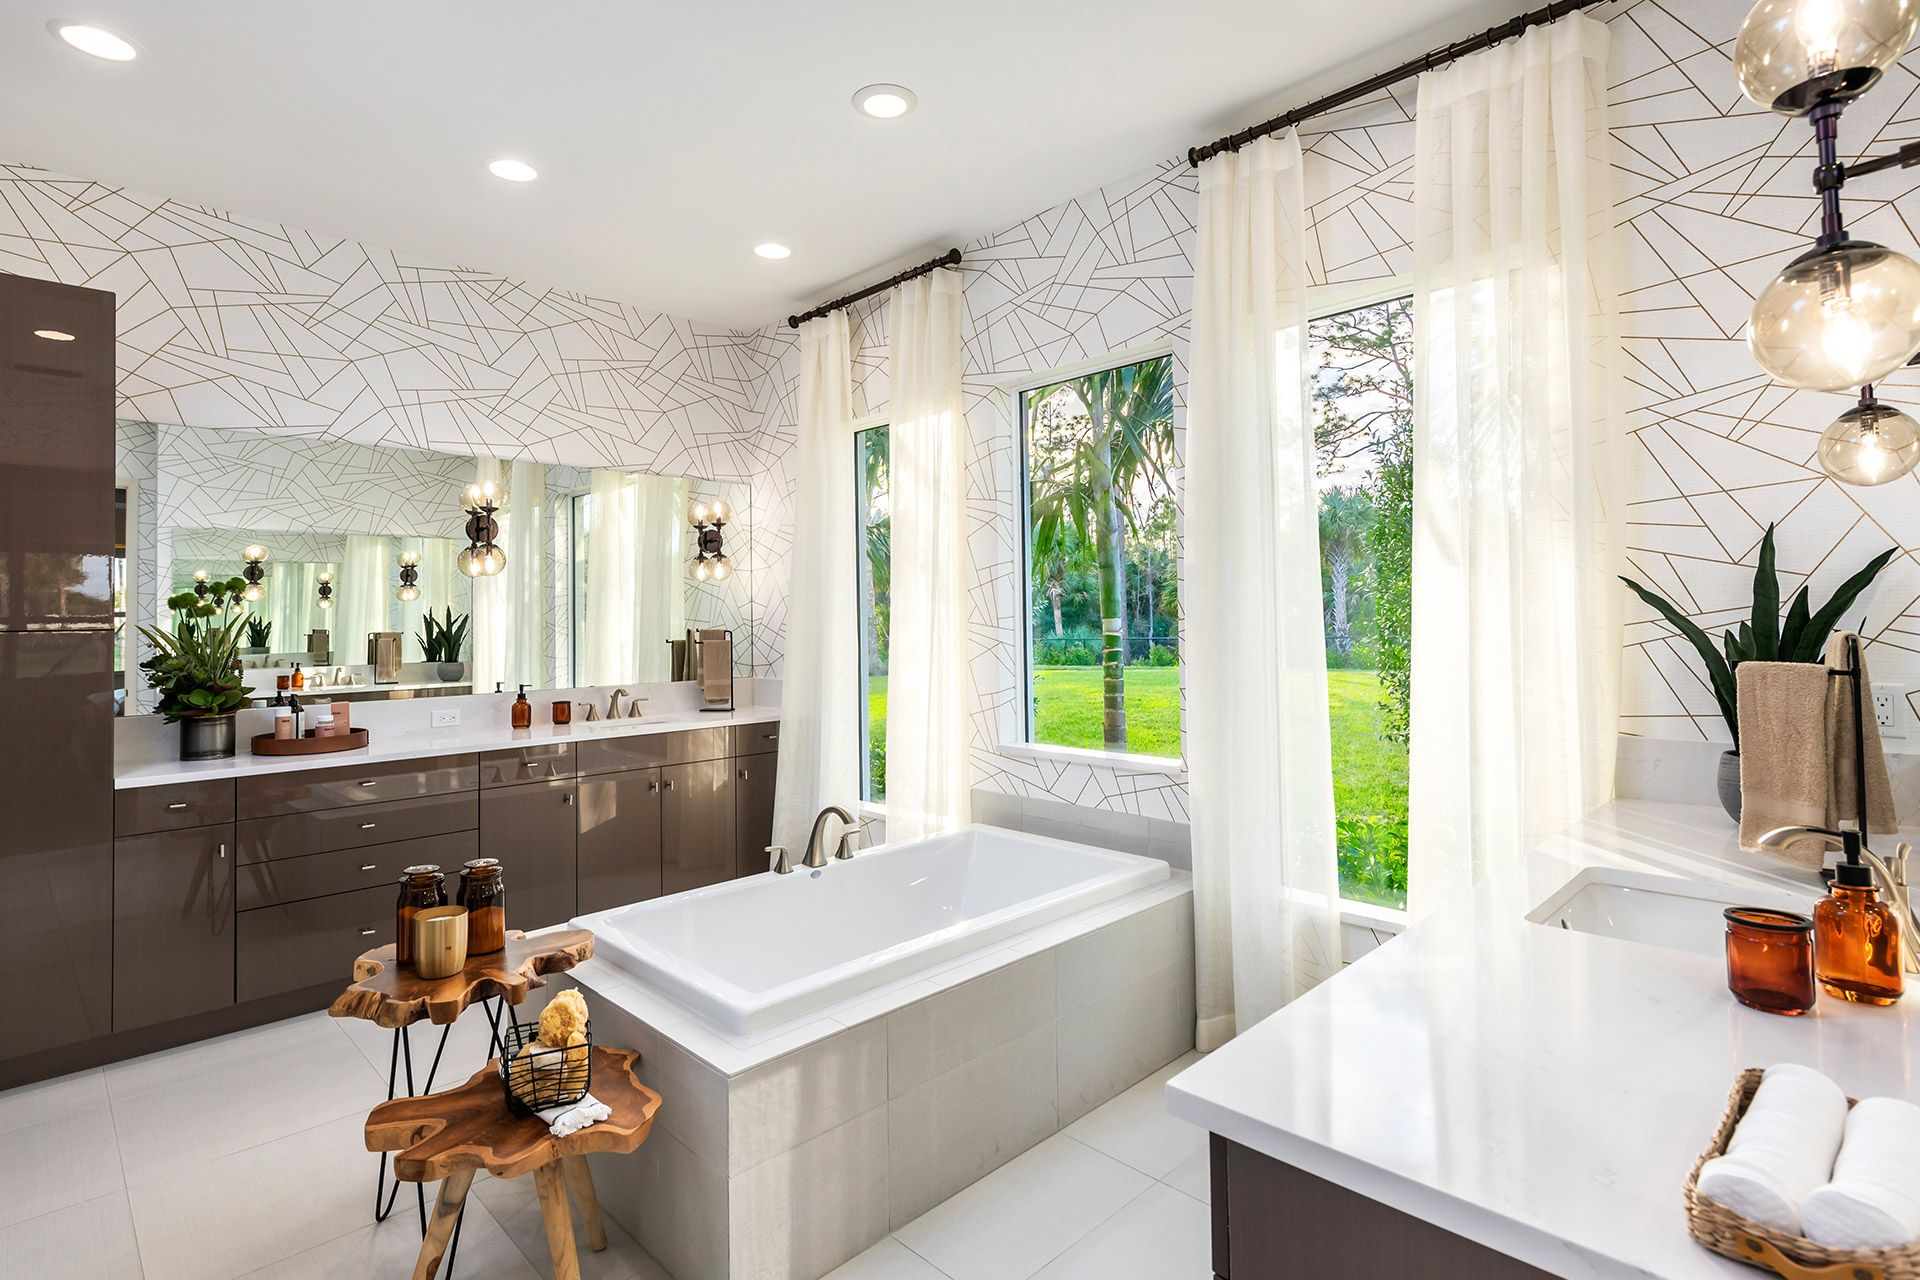 Bathroom featured in the Seabreeze By GL Homes in Naples, FL